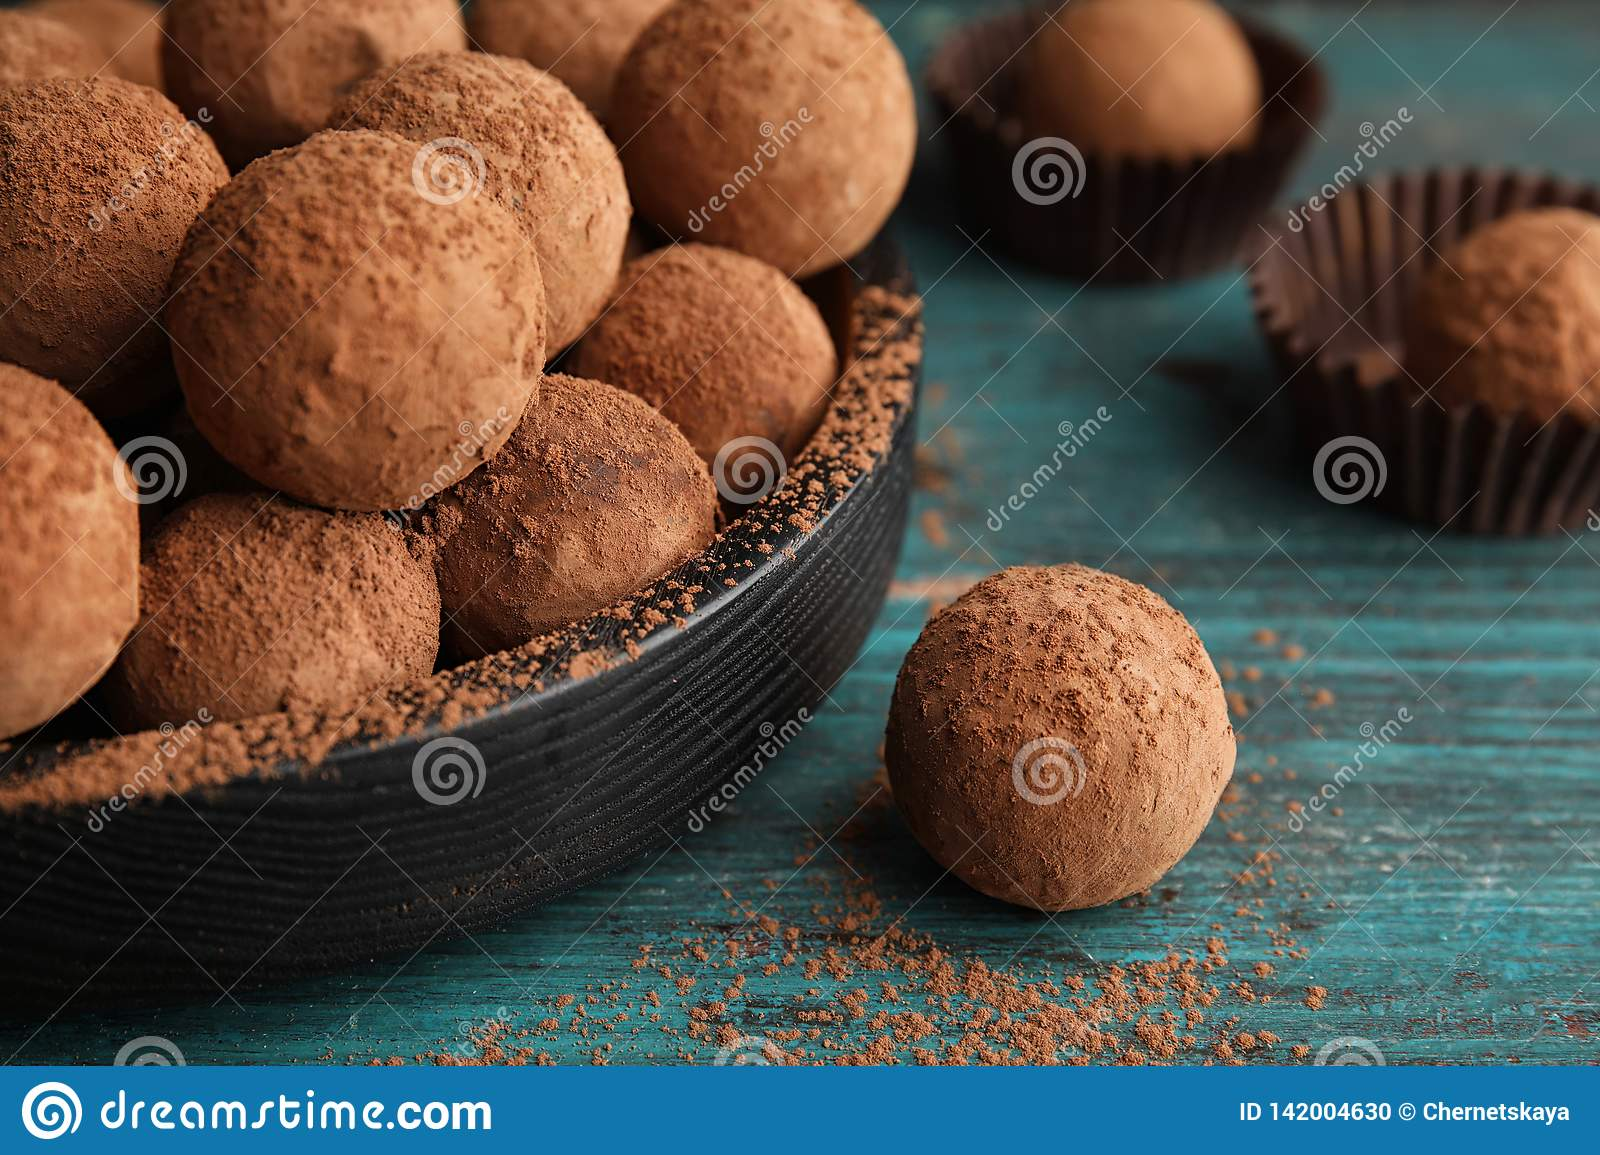 Plate of chocolate truffles on wooden background